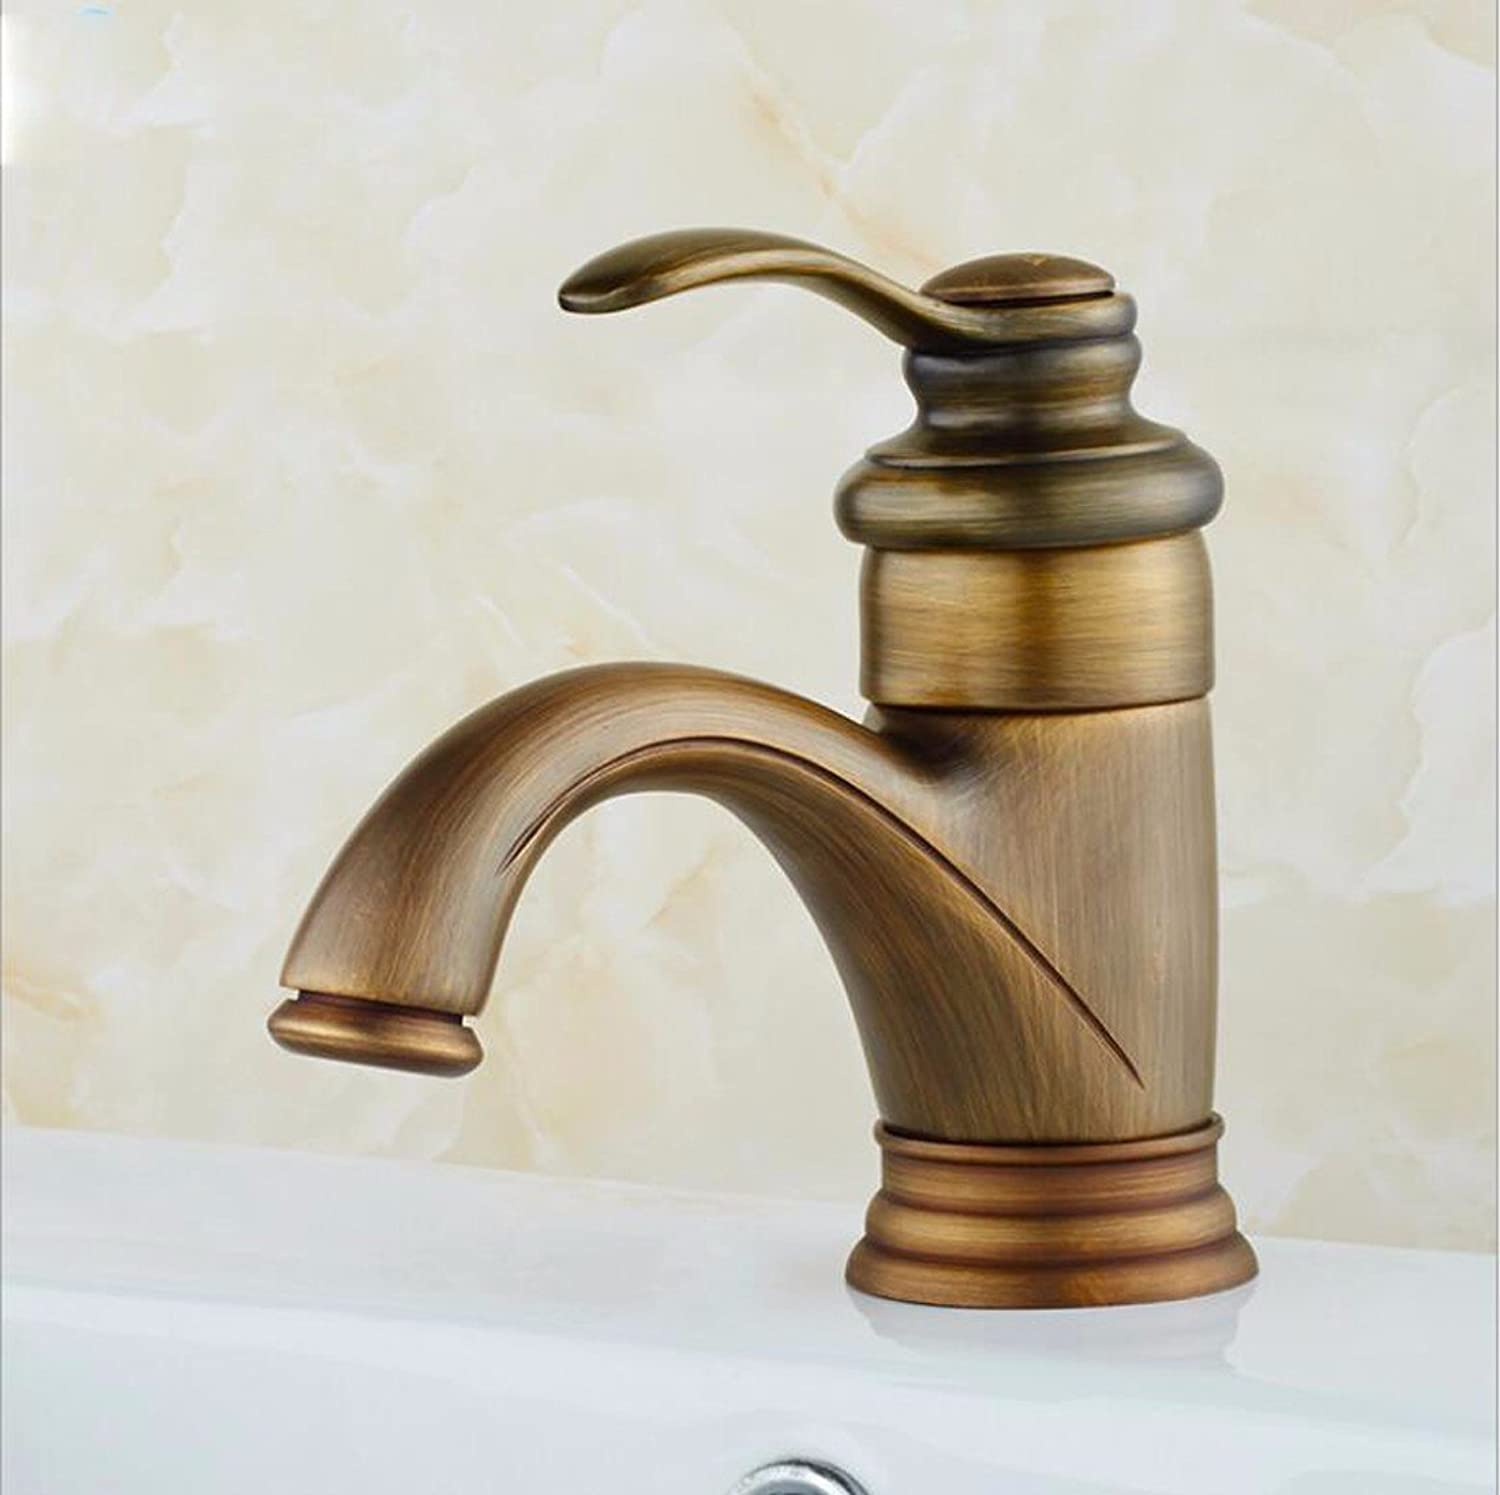 SHLONG European Style Copper Antique Basin Faucet Bathroom Sink Faucet Simple hot and Cold Water Mixer